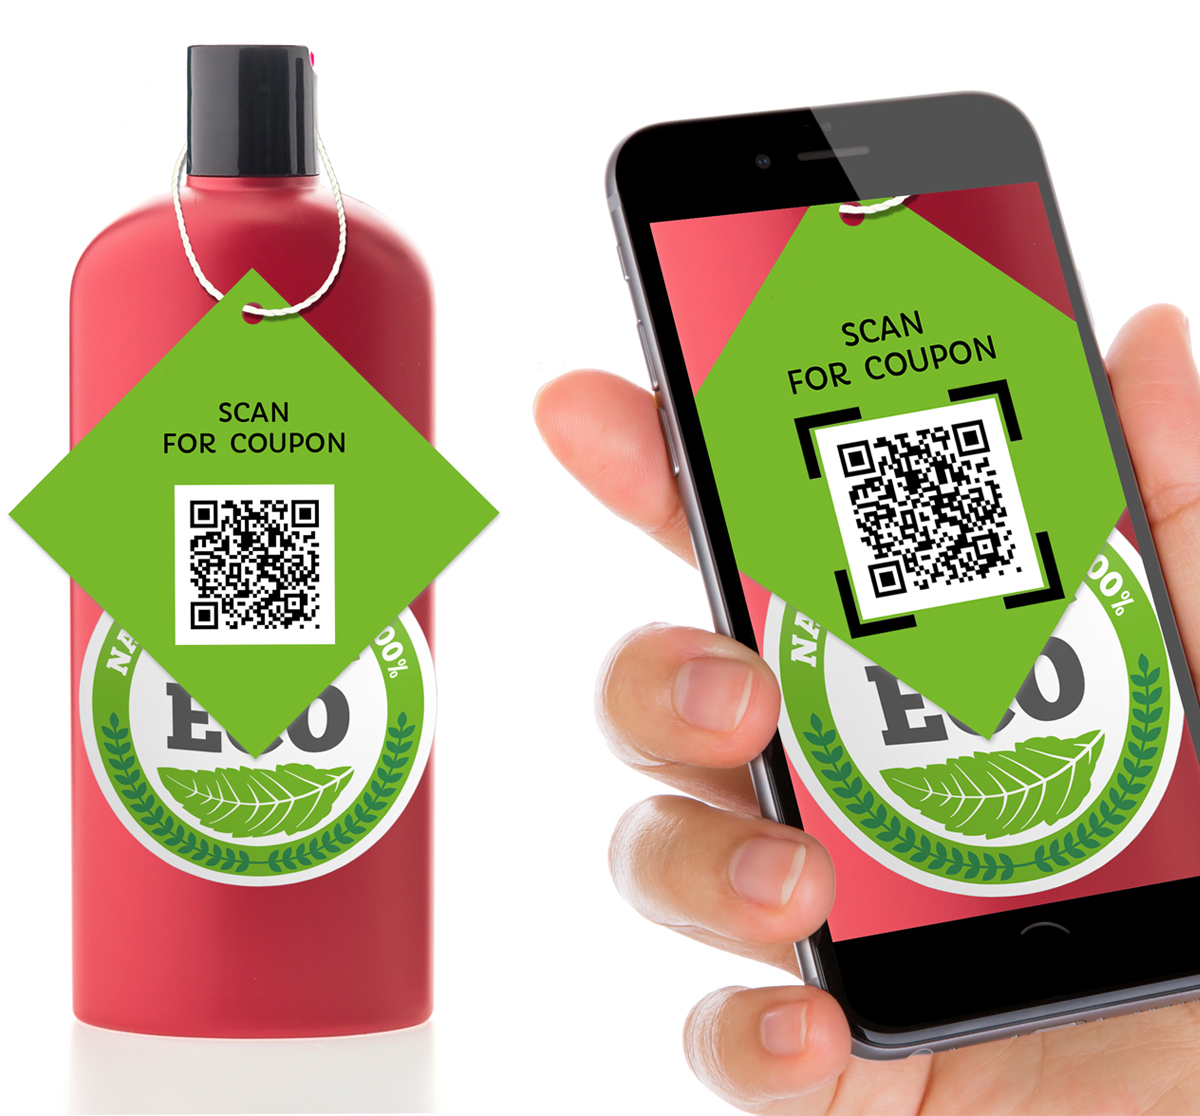 QR code hang tag. Make a custom hang tag for your product or event.